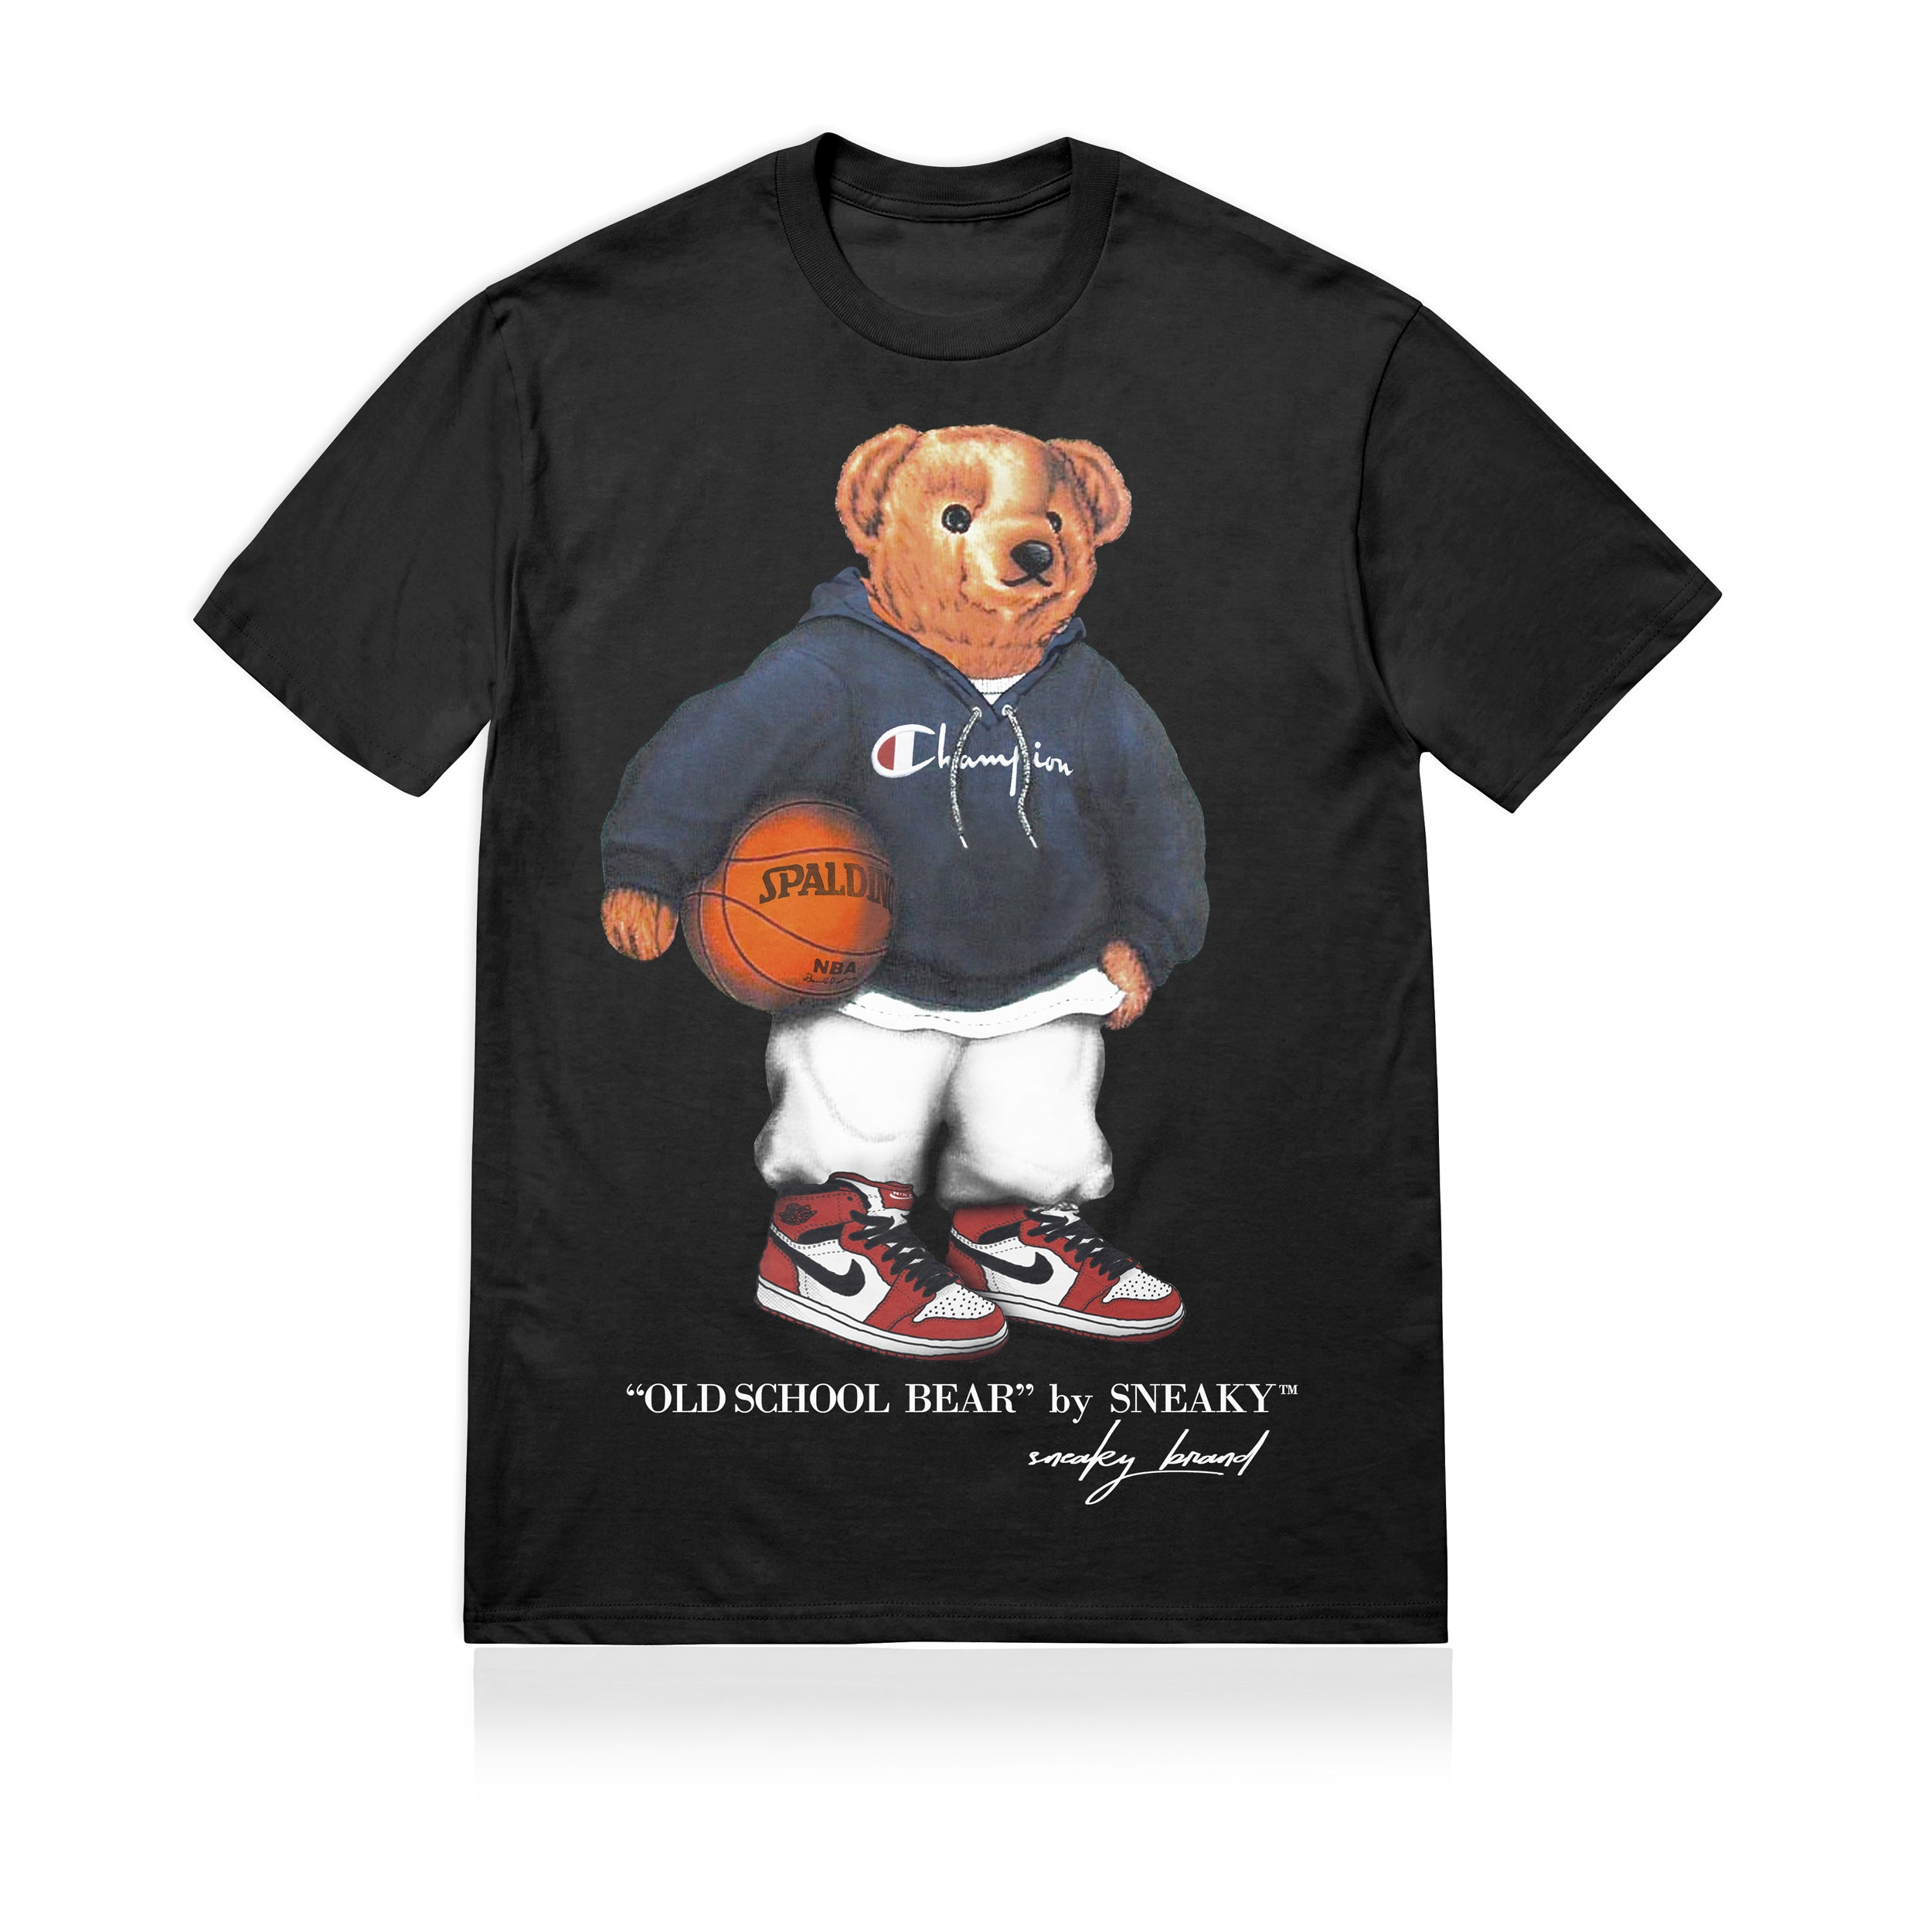 Sneaky Old Scool Bear Unisex Adult T-shirt Black